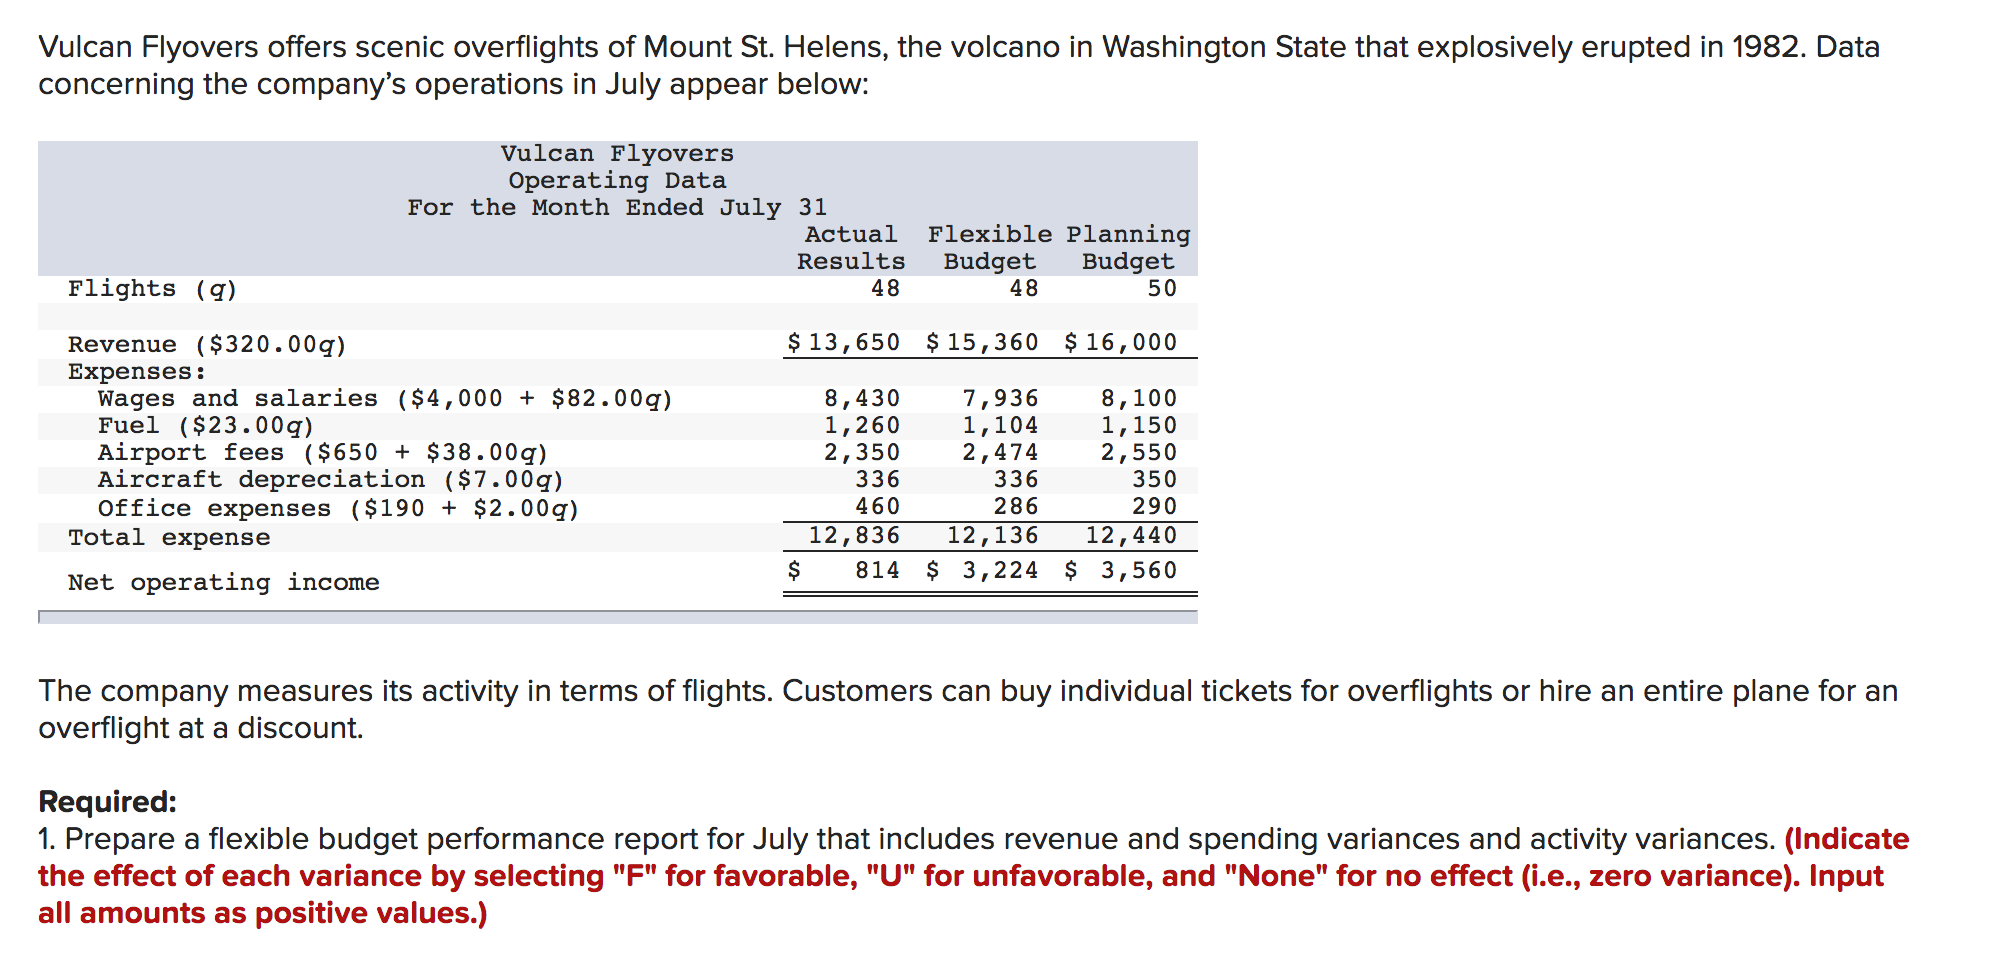 """Vulcan Flyovers offers scenic overflights of Mount St. Helens, the volcano in Washington State that explosively erupted in 1982. Data concerning the company's operations in July appear below: Vulcan Flyovers Operating Data For the Month Ended July 31 Flexible Planning Budget 50 Actual Results Budget 48 Flights (q) 48 $ 13,650 $15,360 $16, 000 Revenue ($320.00g) Expenses: Wages and salaries ($4,000 + $82.00g) Fuel ($23.00g) Airport fees ($650 + $38.00g) Aircraft depreciation ($7.00g) Office expenses ($190 + $2.00g) Total expense 8,430 1,260 2,350 336 7,936 1,104 2,474 336 8,100 1,150 2,550 350 460 286 290 12,836 12,136 12,440 814 $ 3,224 $ 3,560 Net operating income The company measures its activity in terms of flights. Customers can buy individual tickets for overflights or hire an entire plane for an overflight at a discount. Required: 1. Prepare a flexible budget performance report for July that includes revenue and spending variances and activity variances. (Indicate the effect of each variance by selecting """"F"""" for favorable, """"U"""" for unfavorable, and """"None"""" for no effect (i.e., zero variance). Input all amounts as positive values.)"""